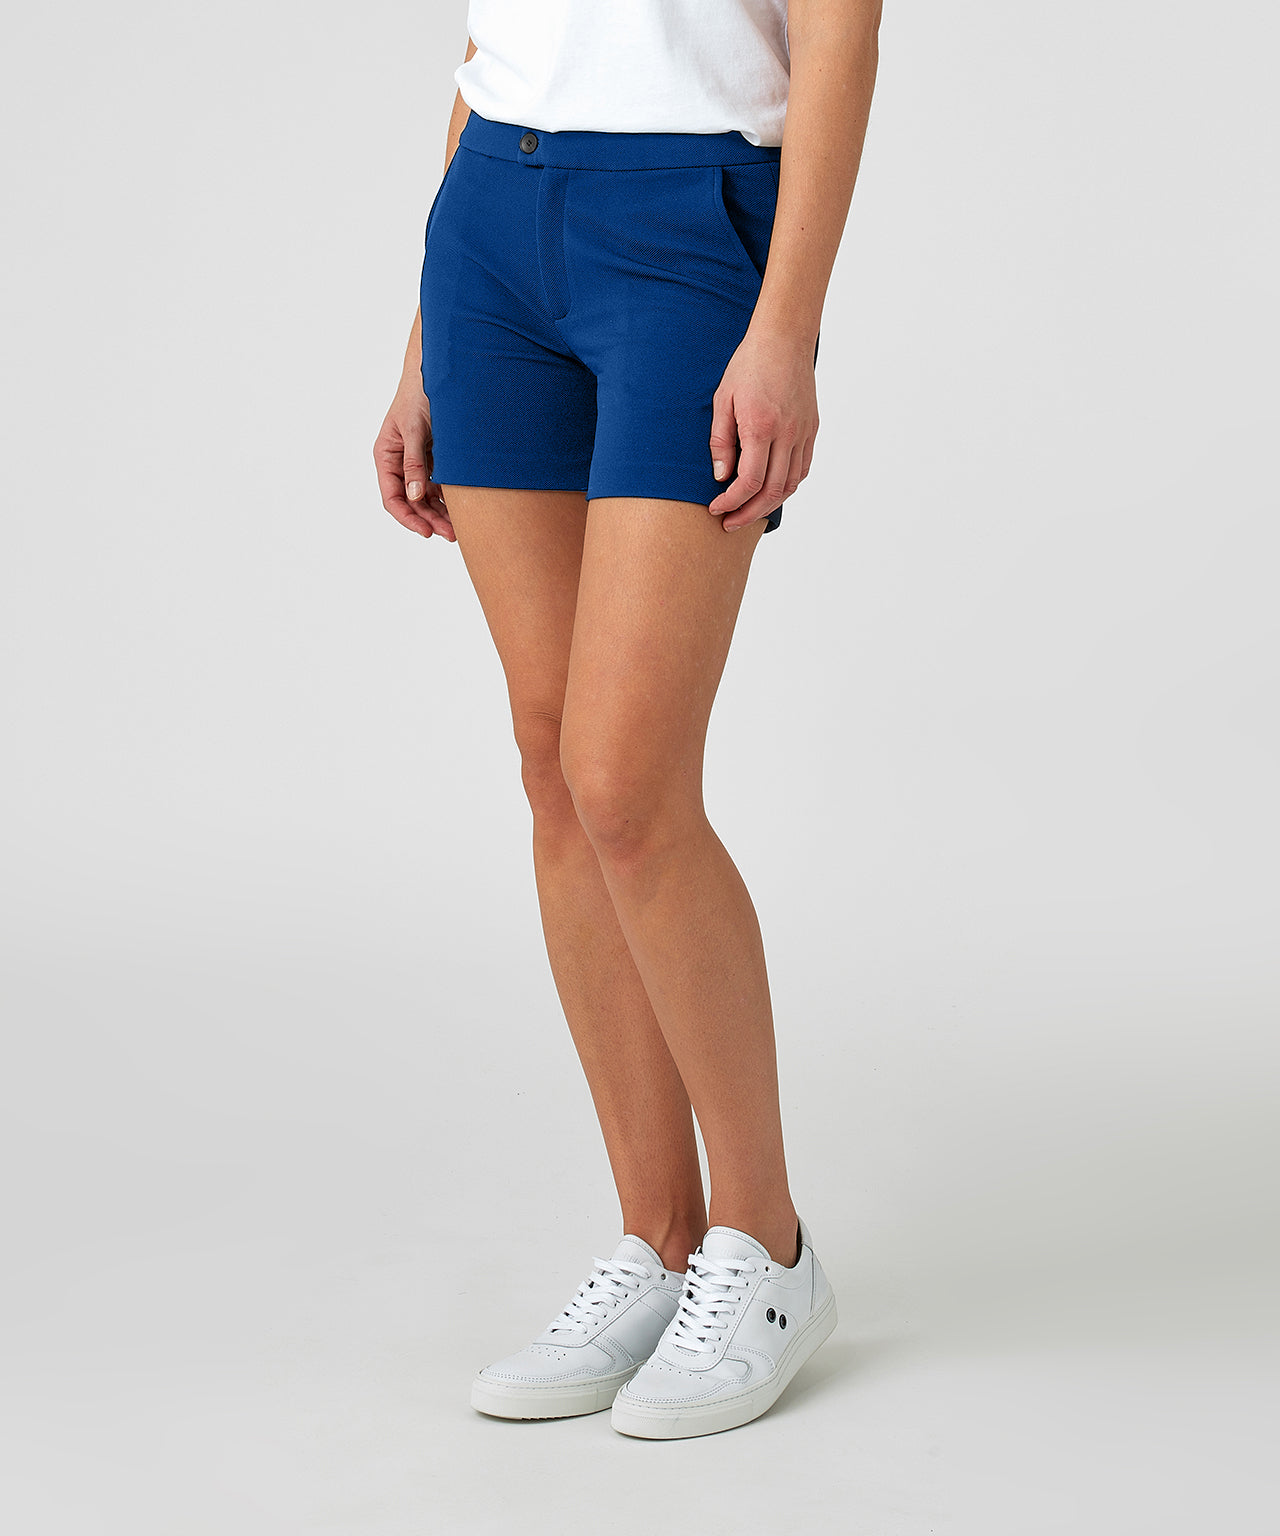 Tennis Shorts His for Her - electric blue